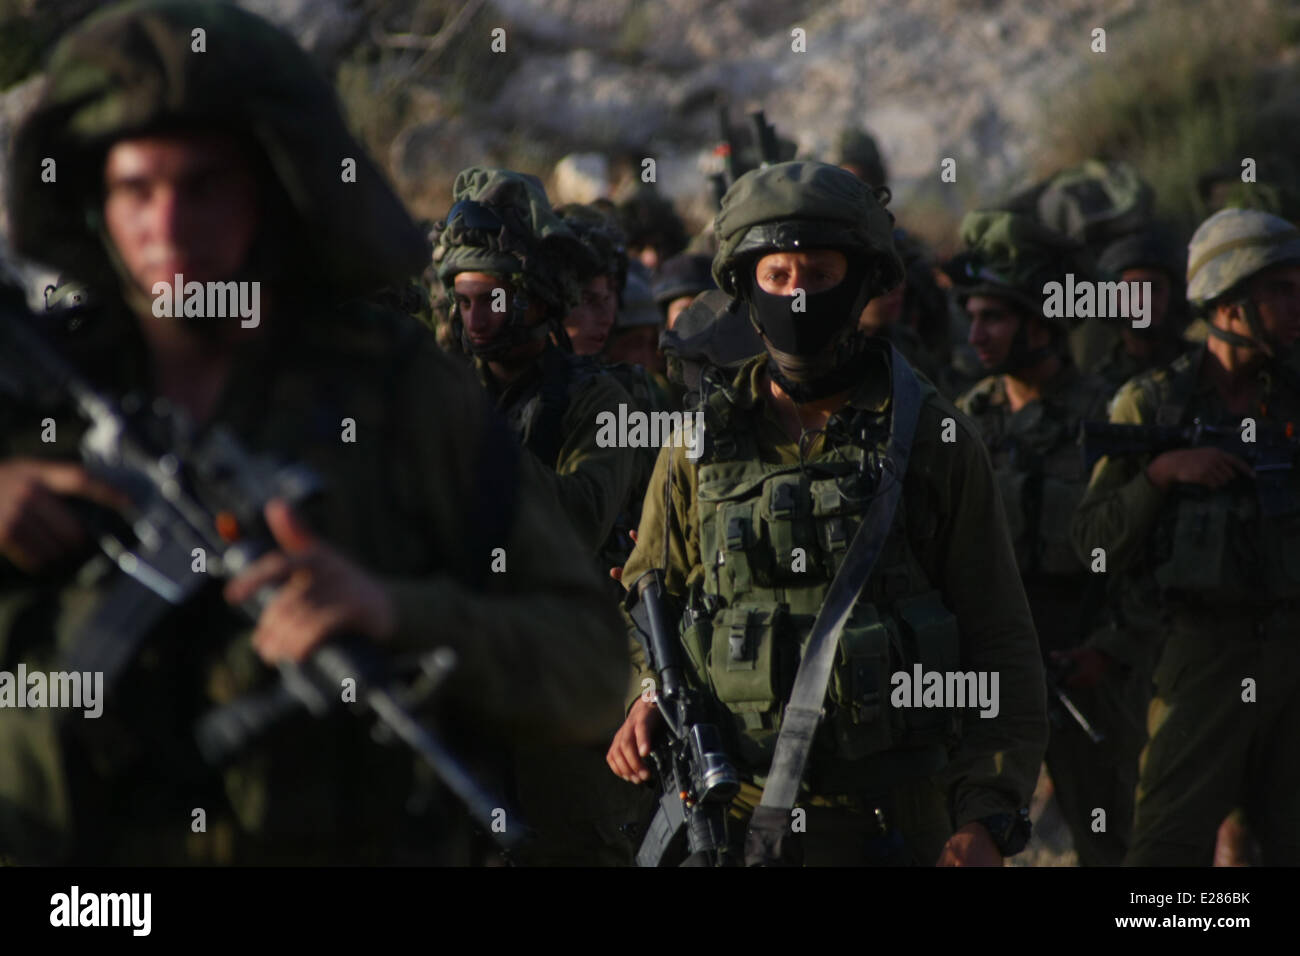 Hebron, Palestinian territory.  16th June, 2014. Israeli soldiers patrol the West Bank city of Hebron on June 16, - Stock Image